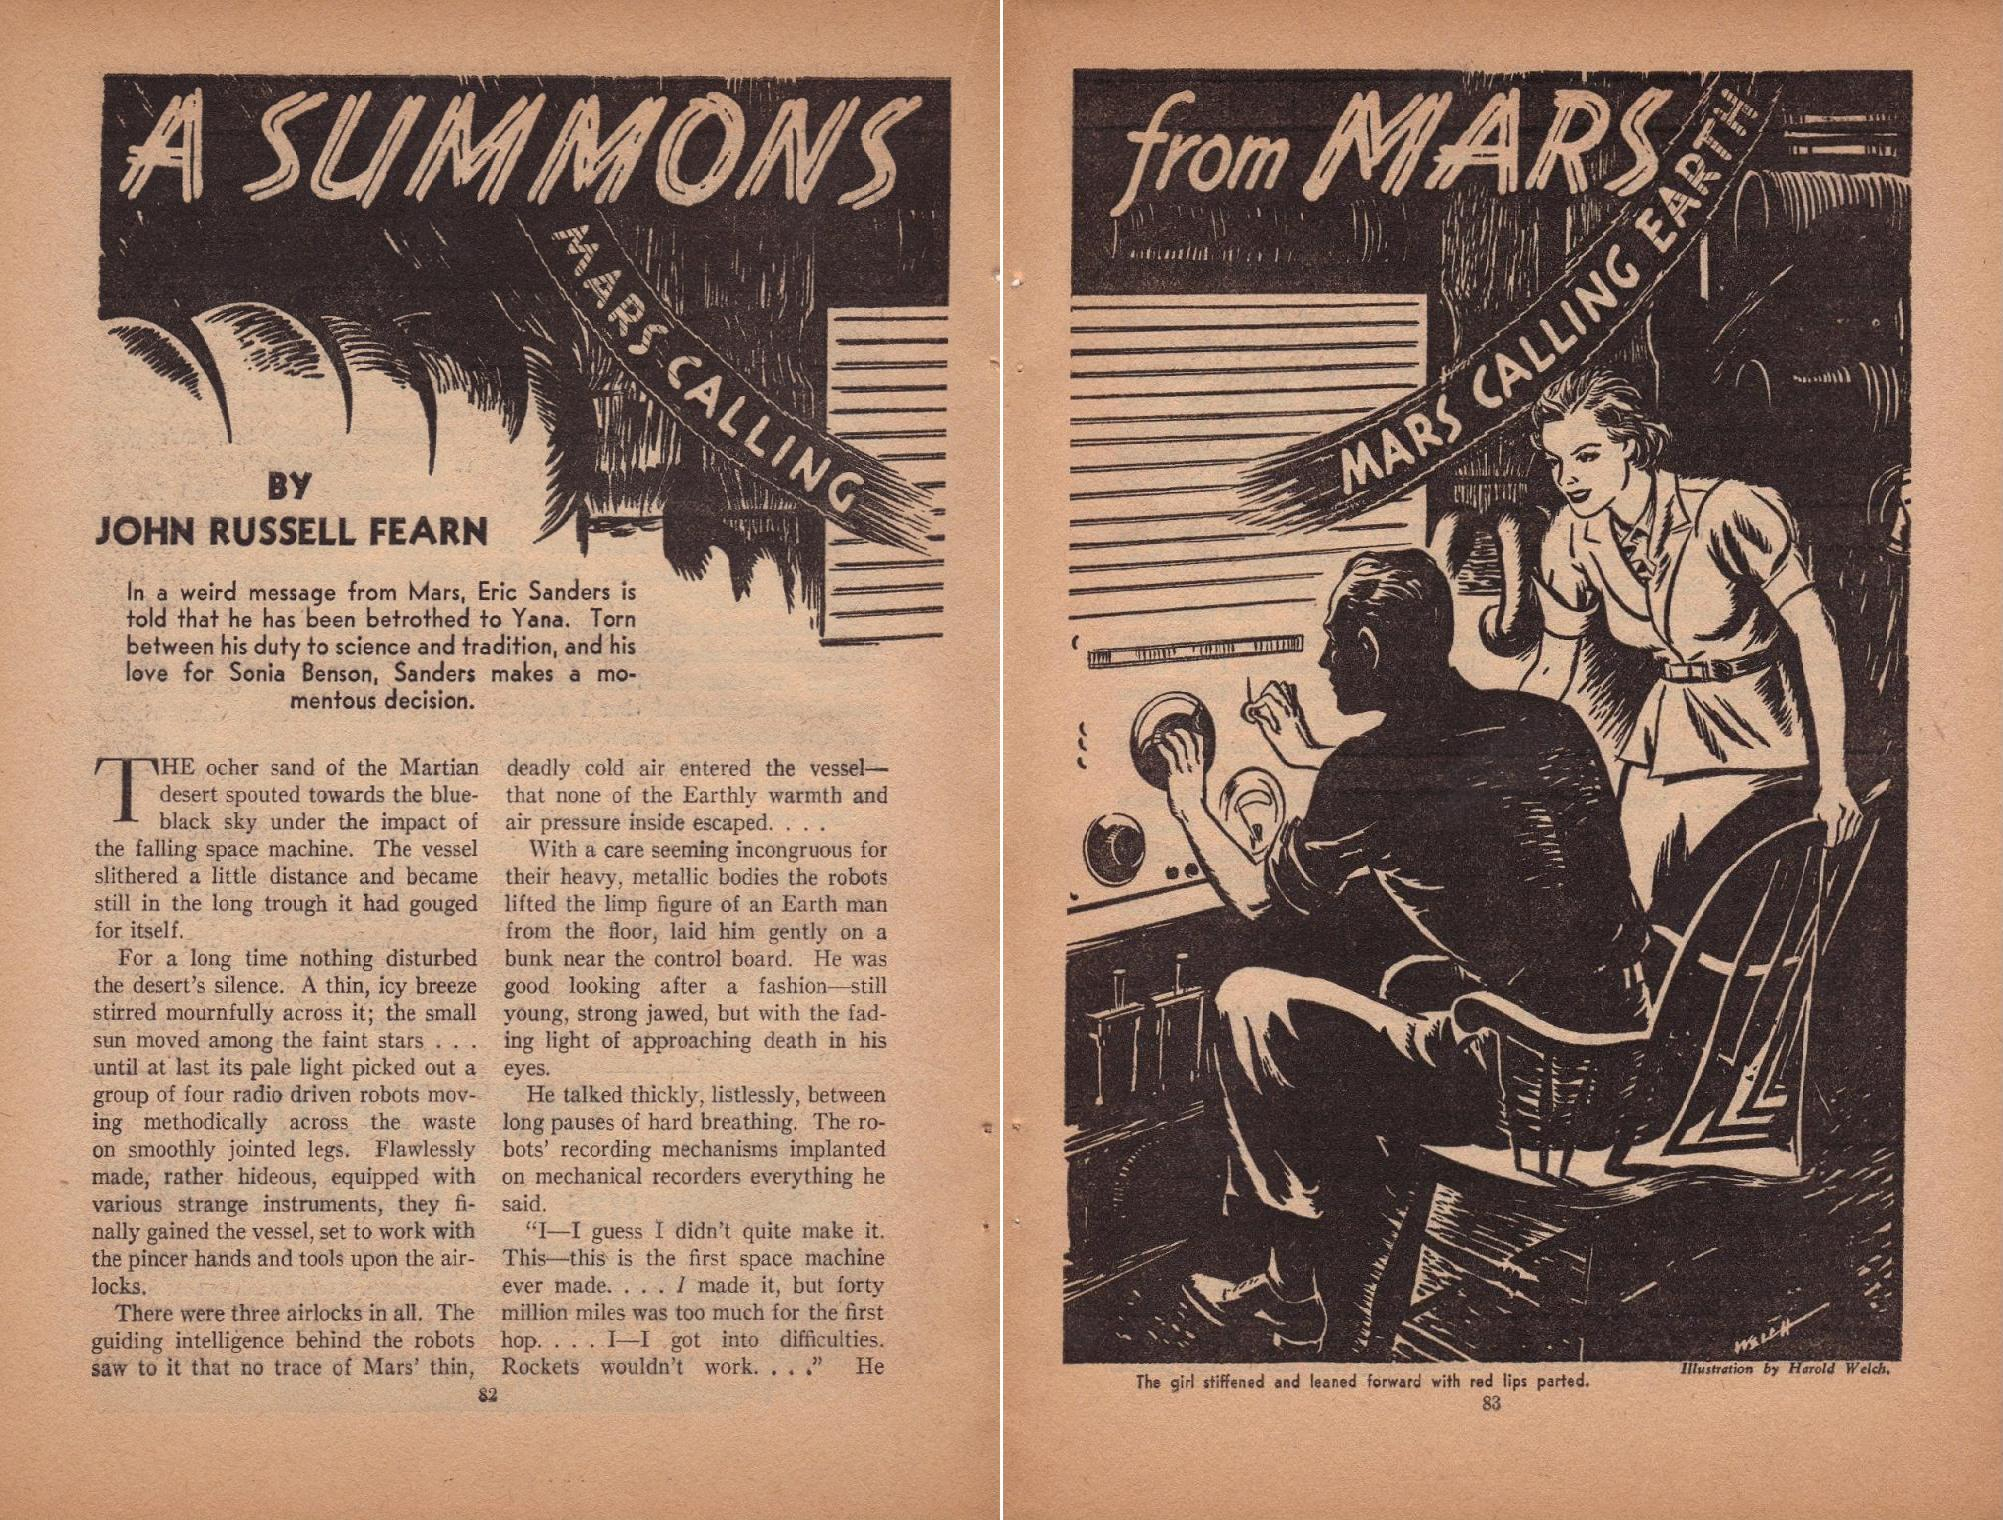 A Summons from Mars